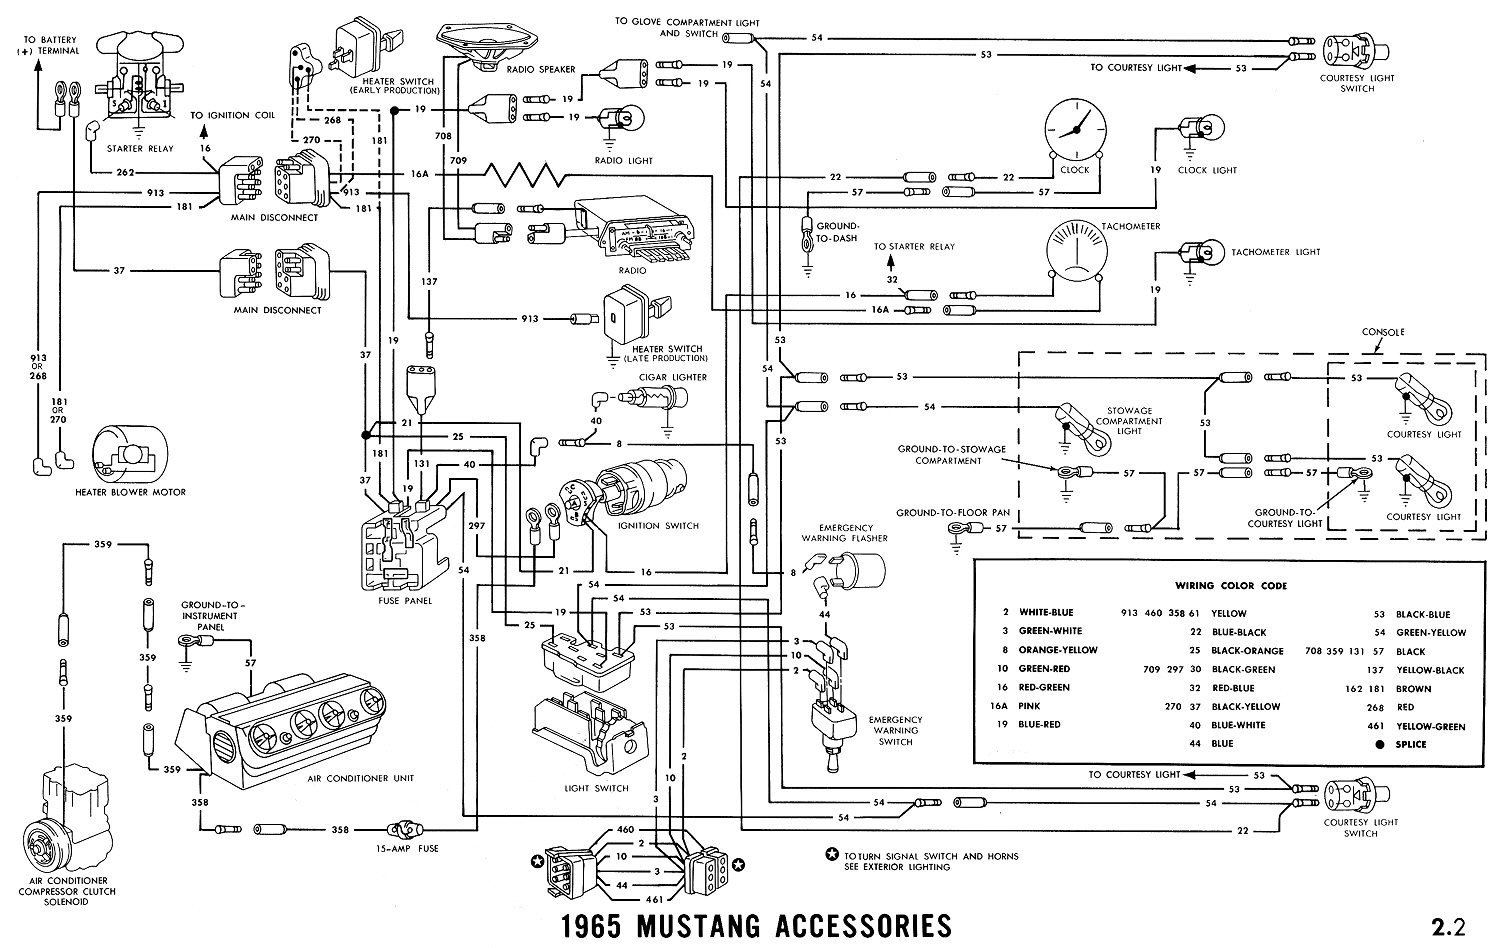 89 Mustang Fuse Diagram Archive Of Automotive Wiring 2 3 Liter Ford Engine Schematic 1965 Ignition Rh Asparklingjourney Com